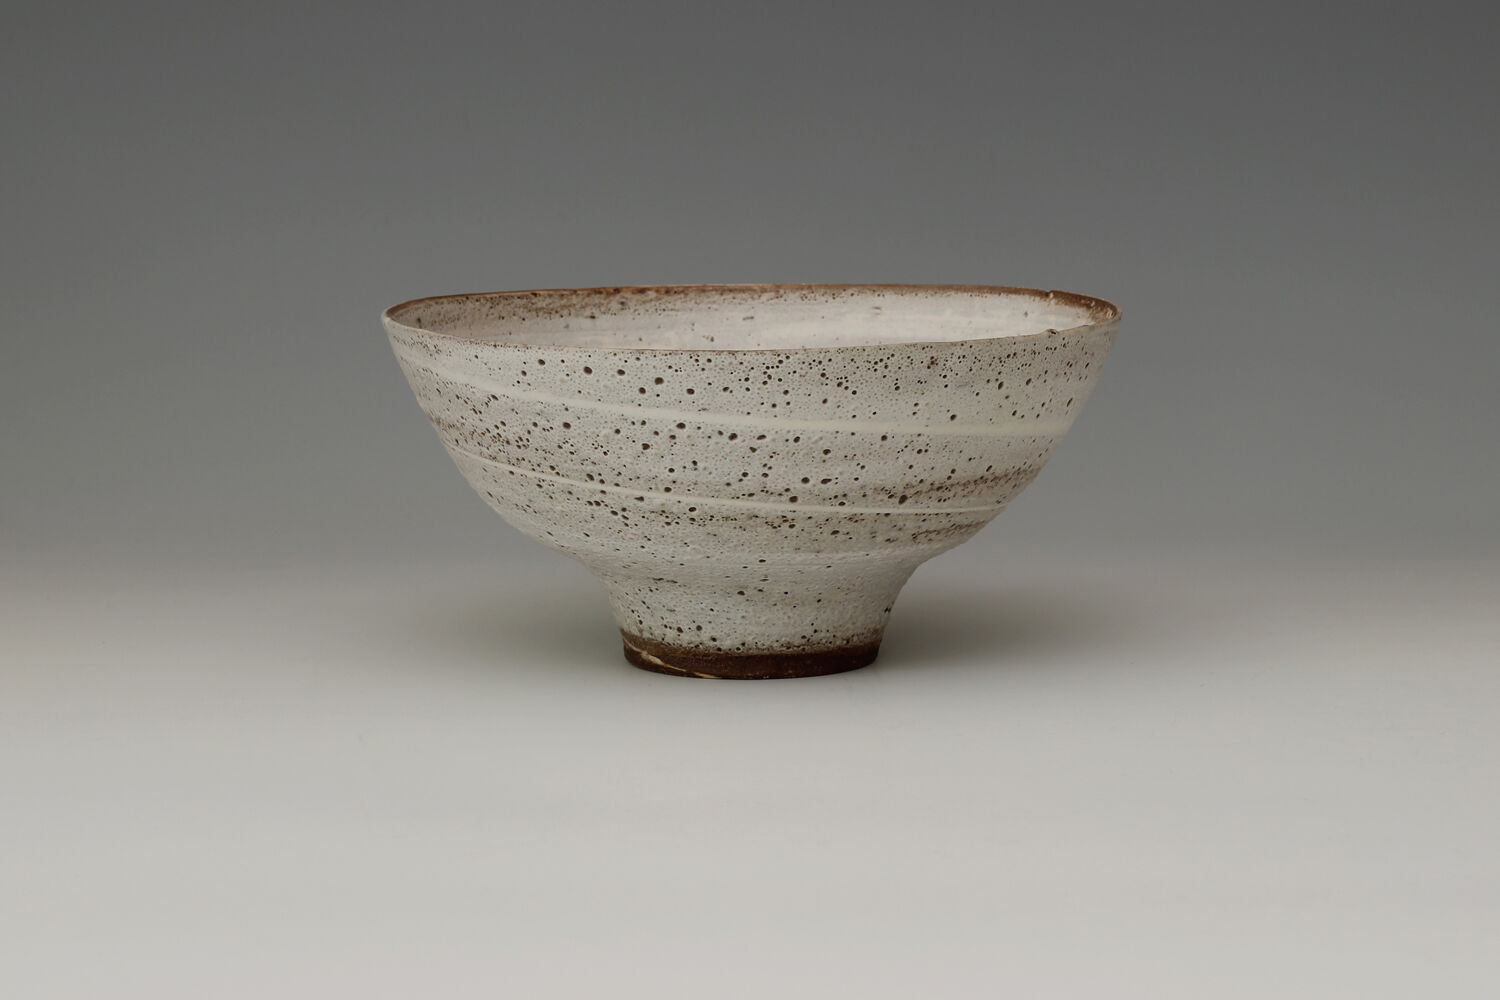 Peter Wills Ceramic Agate-ware Bowl 177